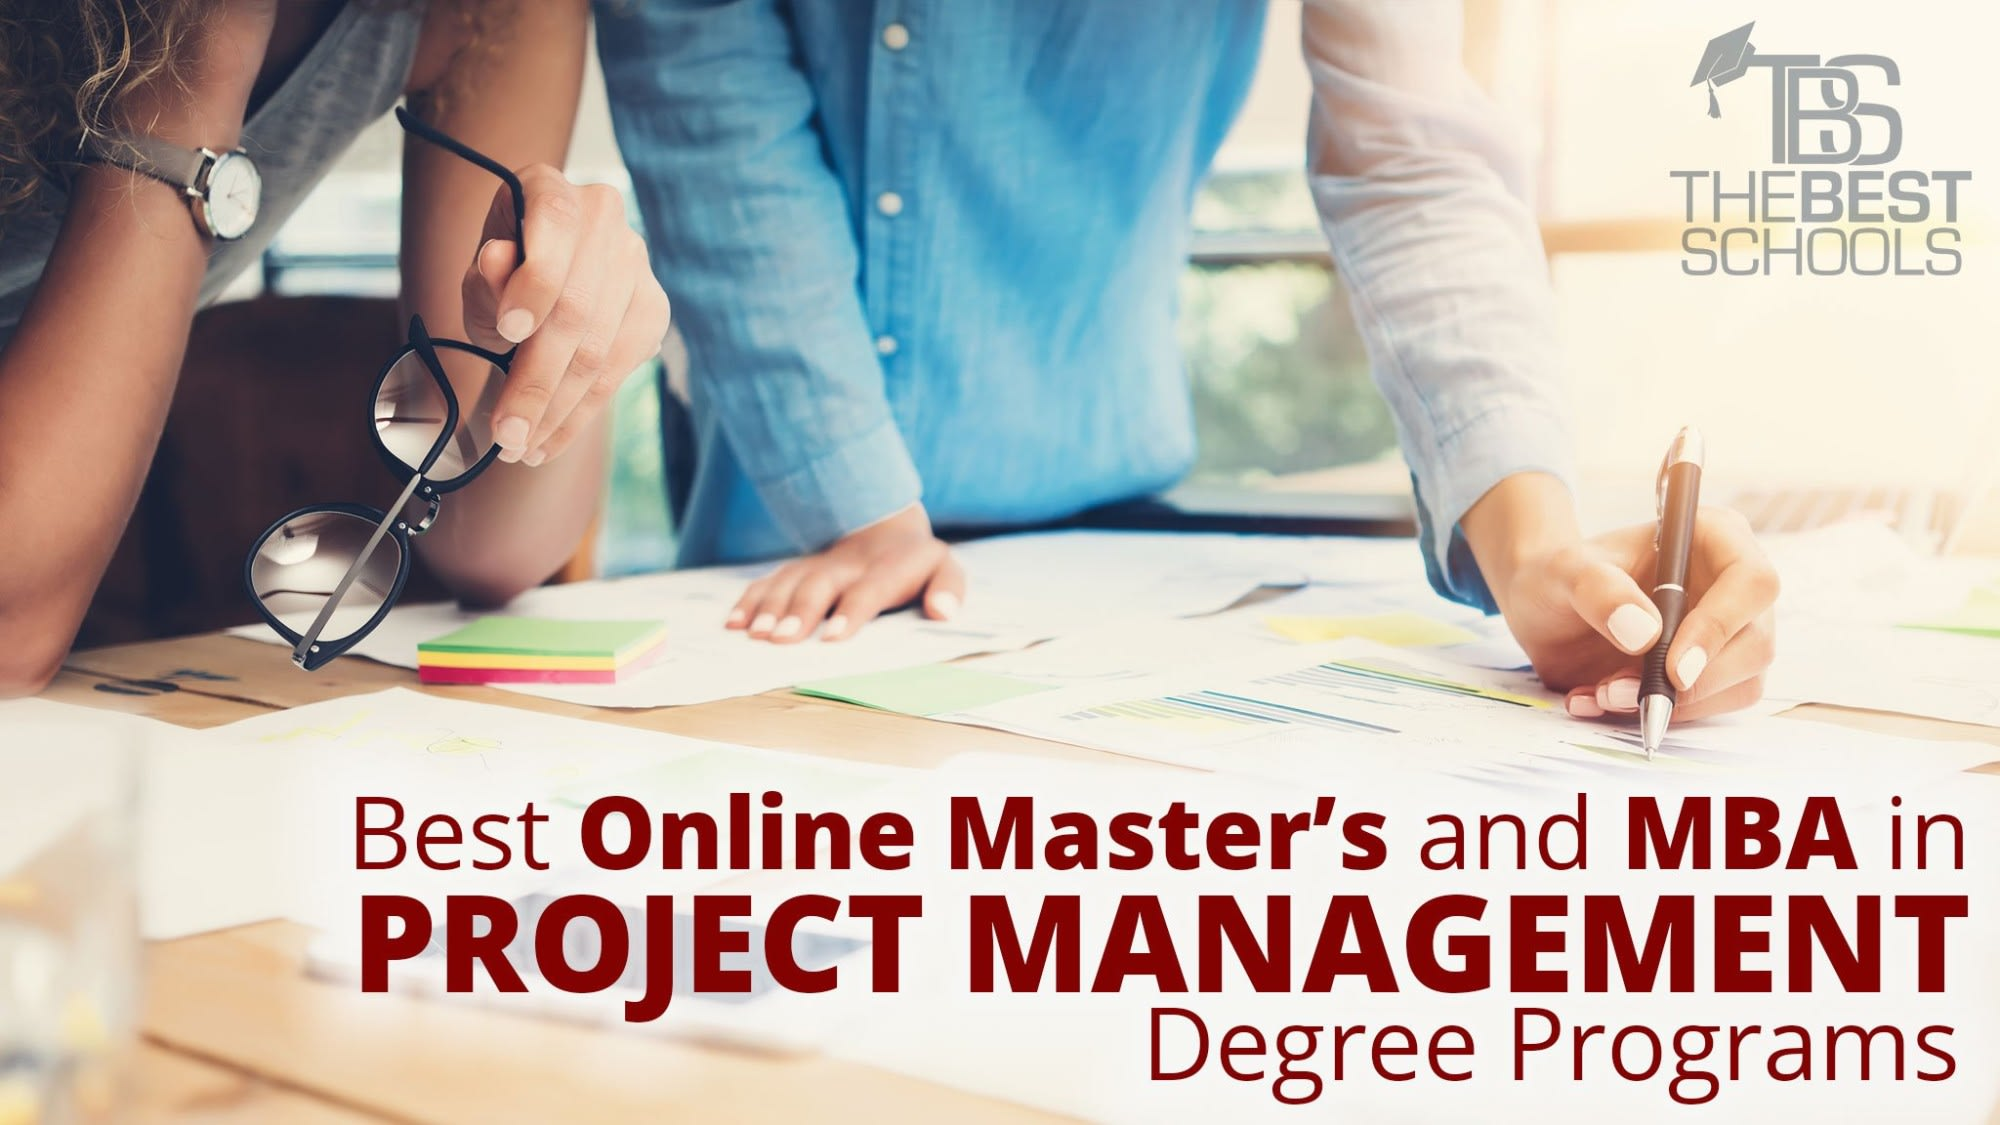 Best Online Master's and MBA in Project Management Degree